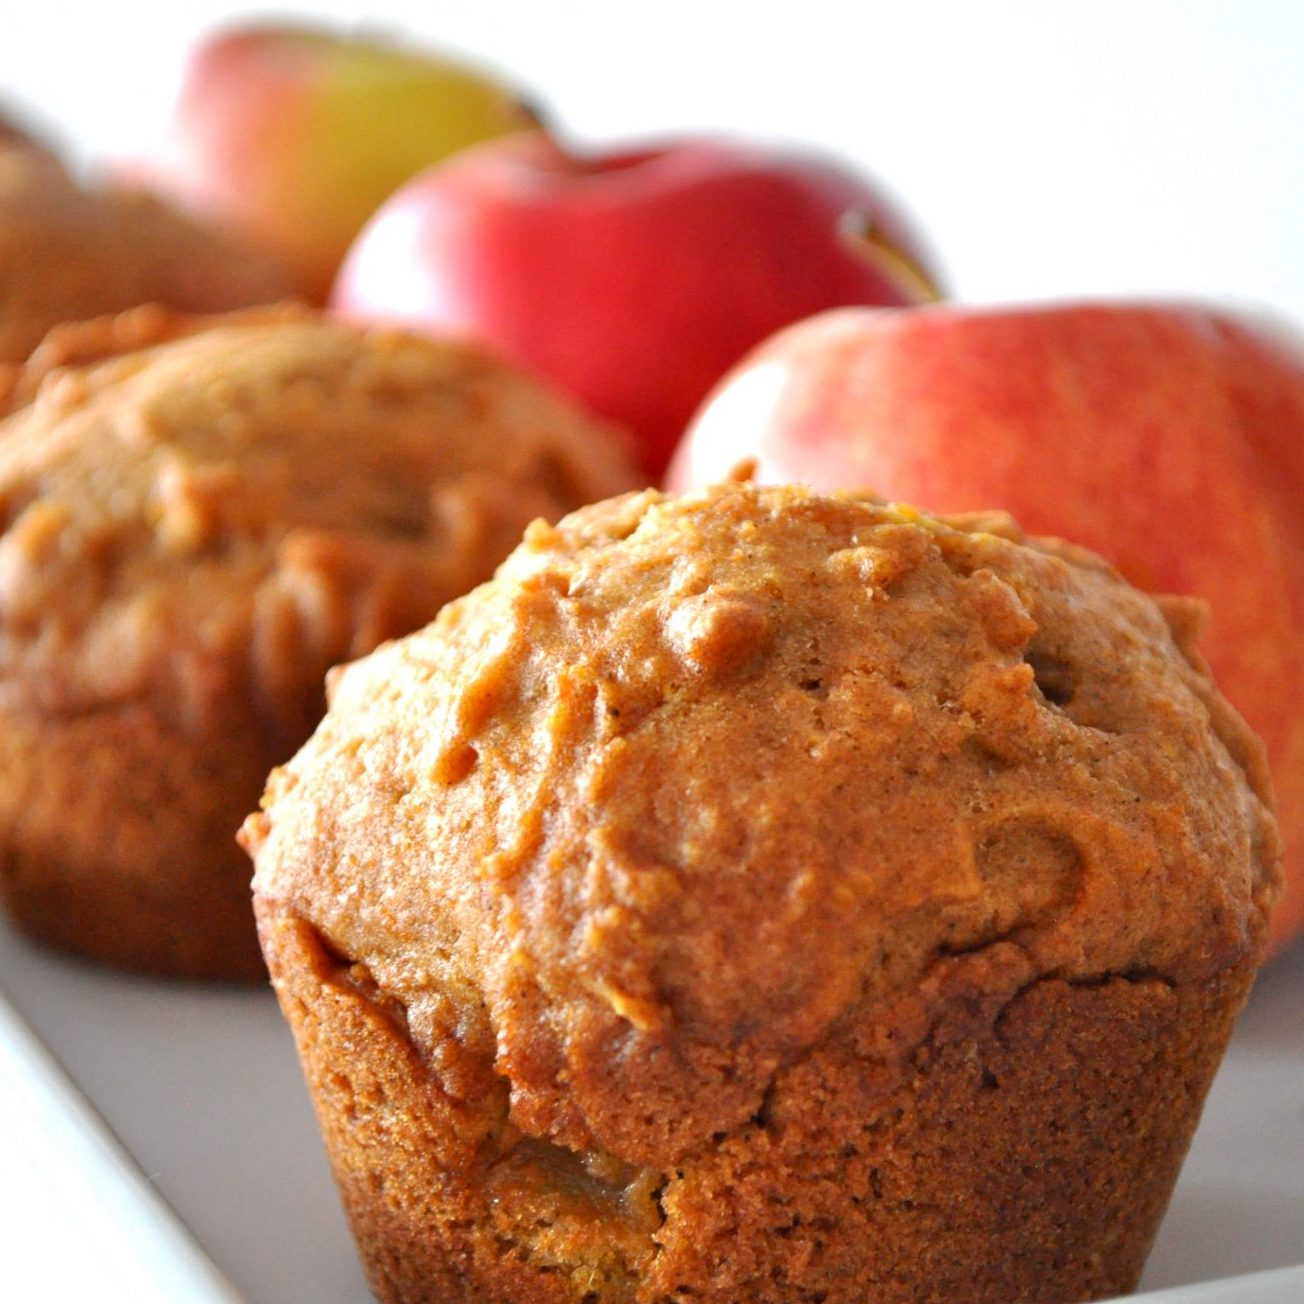 Pumpkin Apple Streusel Muffins on a white dish in front of red apples